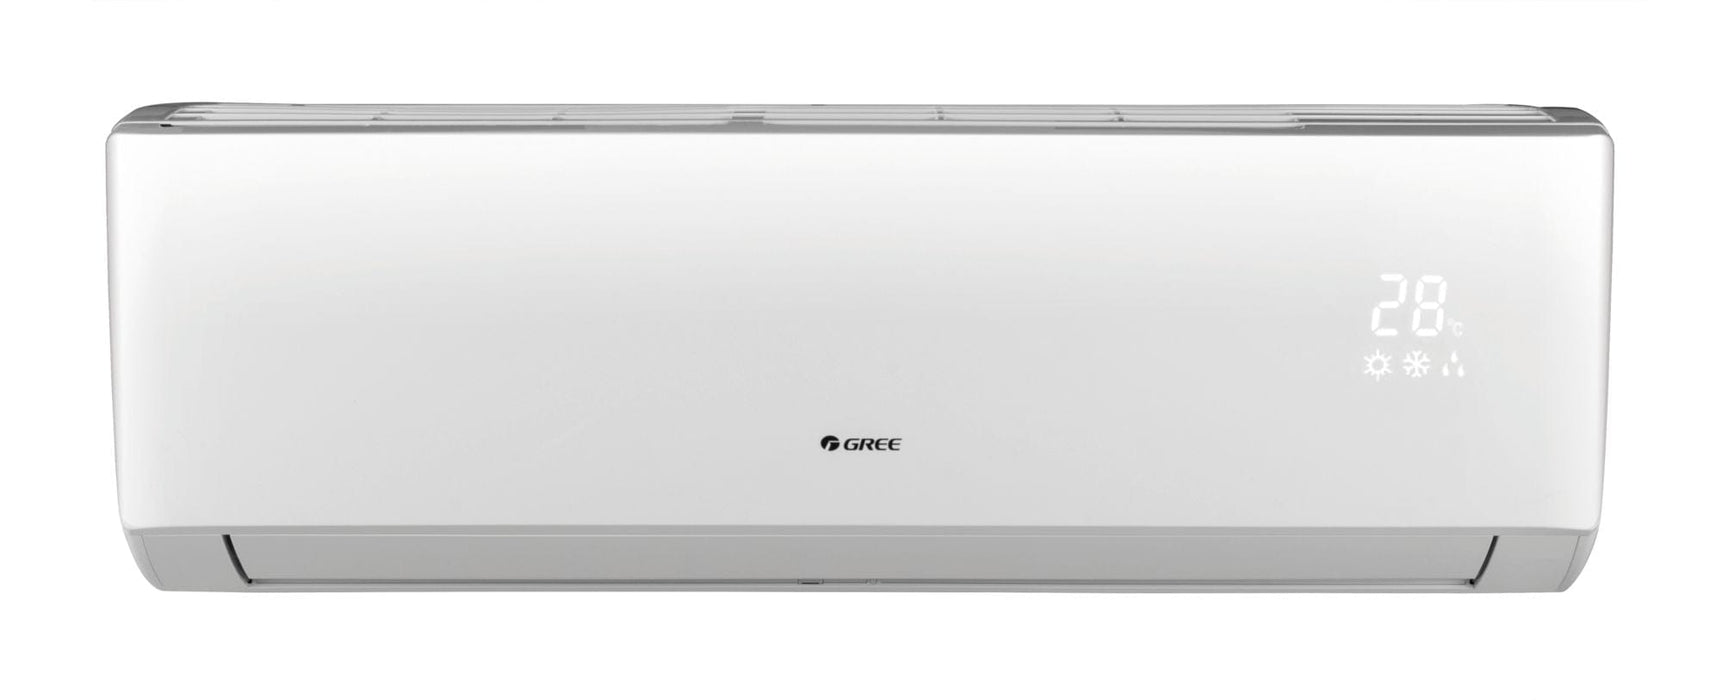 Gree 9,000 BTU 16 SEER LIVO+ Wall Mount Ductless Mini Split Indoor Unit 208-230V